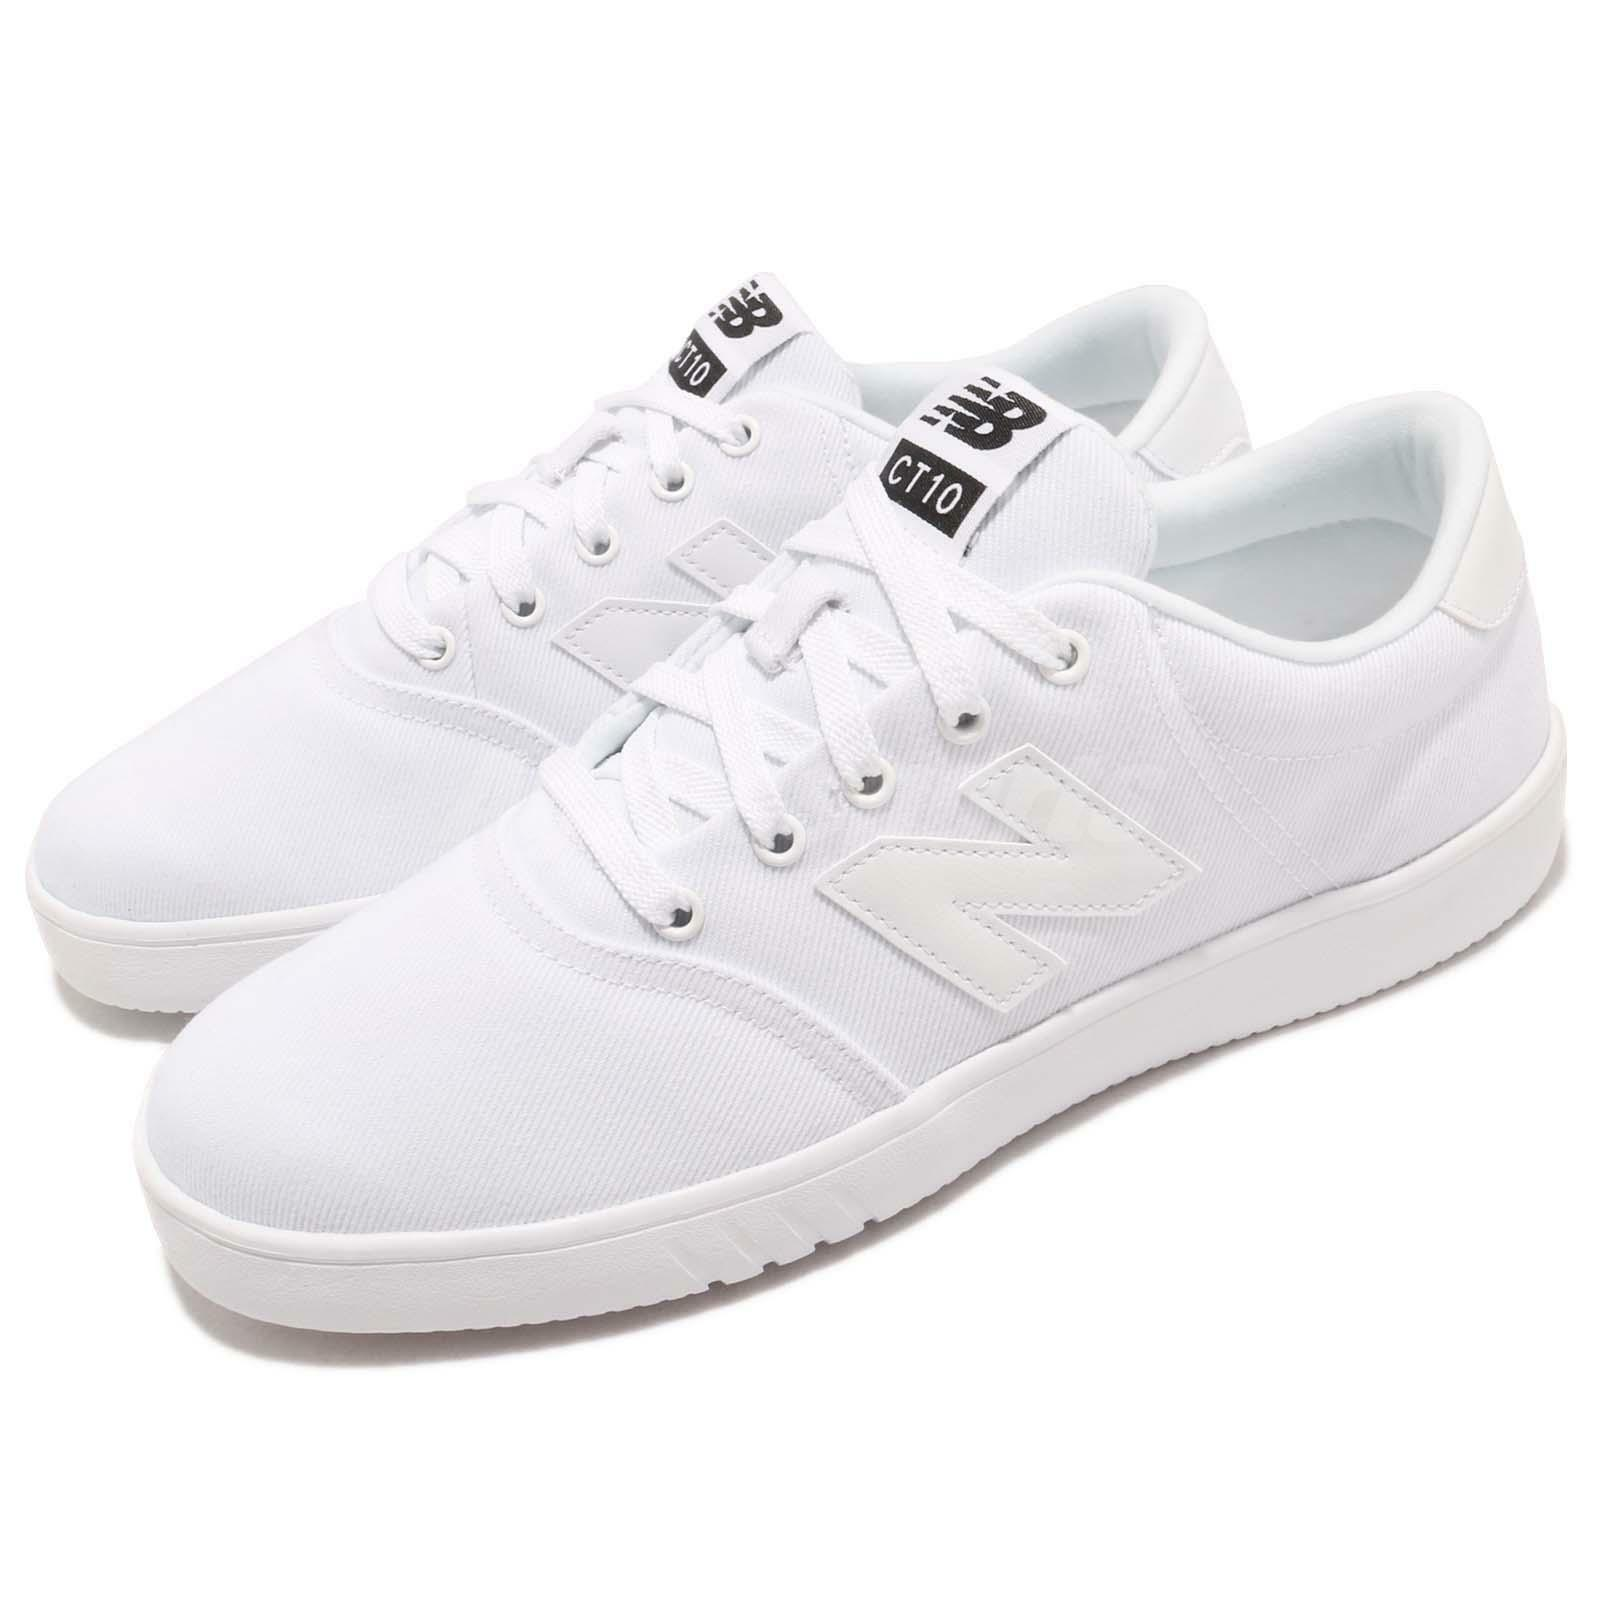 New Balance CT10YNC D blanc noir homme Casual Walking chaussures Sneakers CT10YNCD